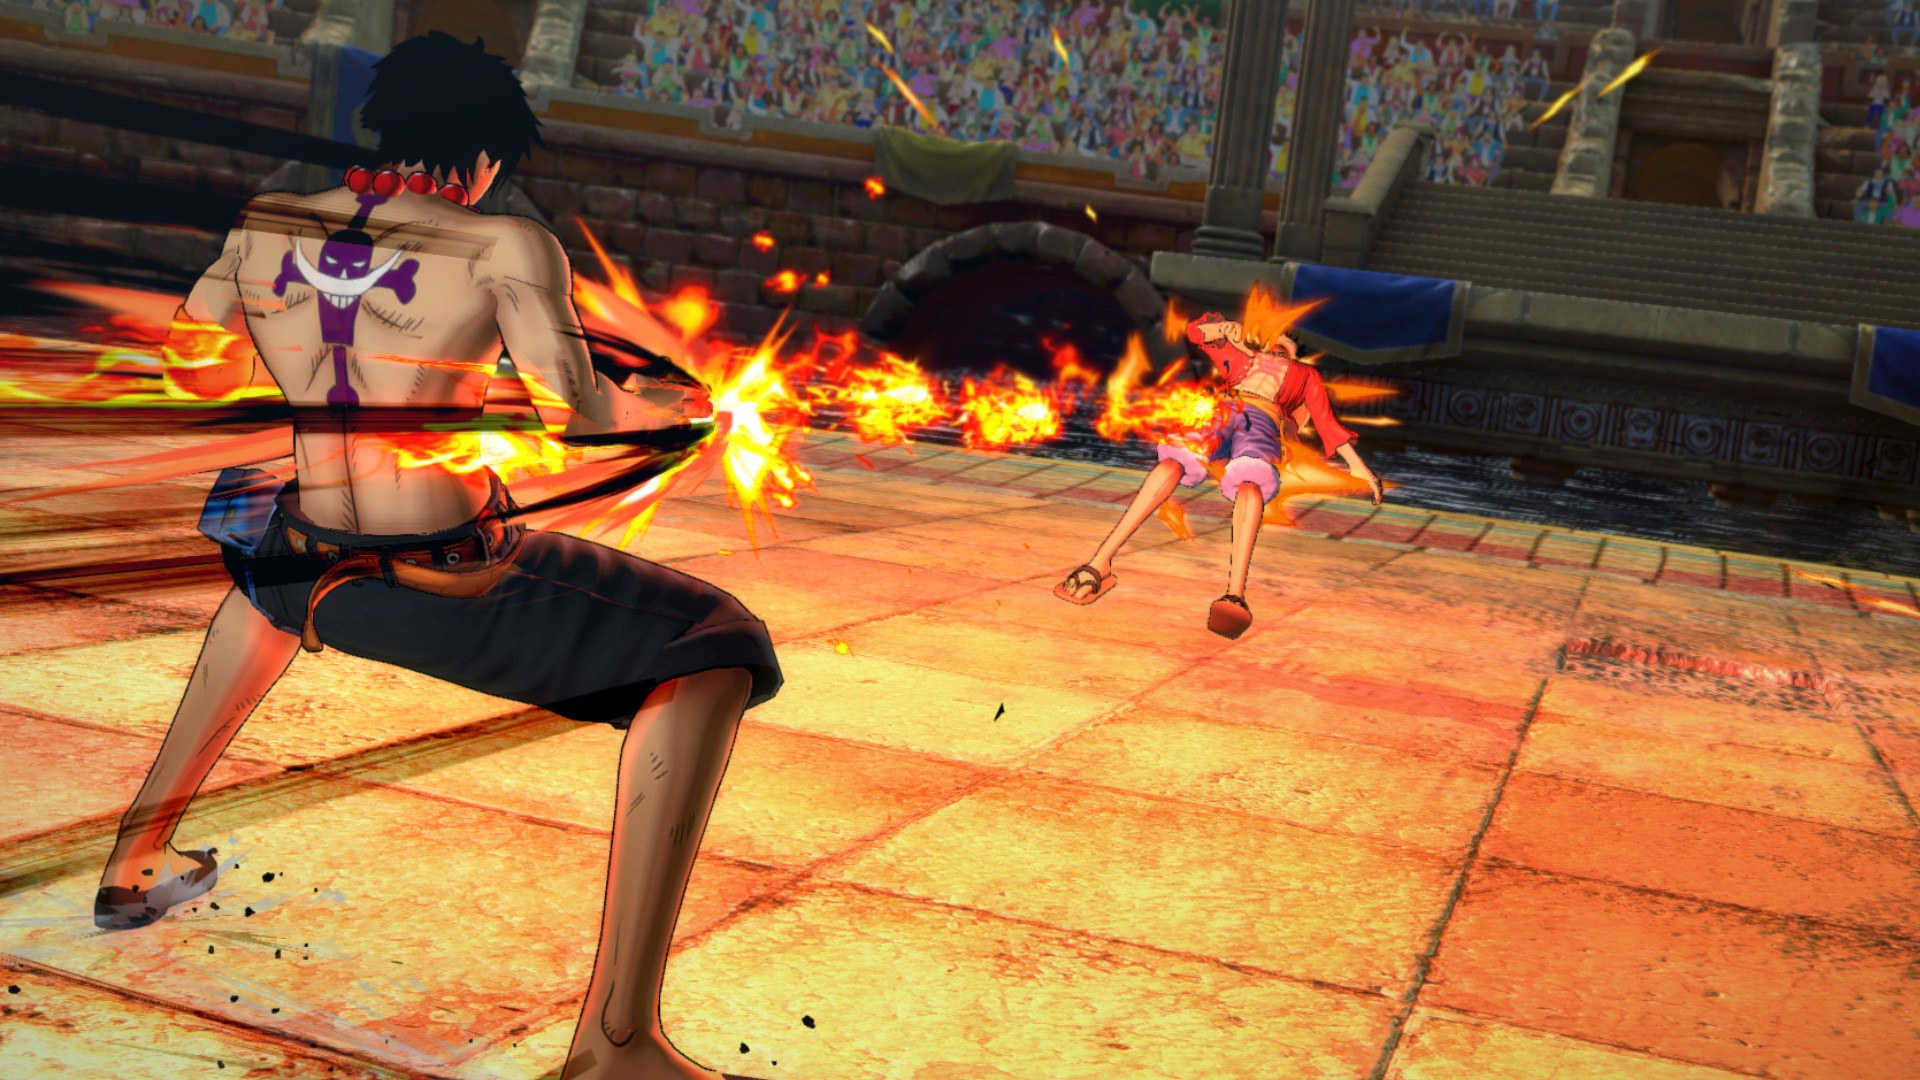 One Piece Burning Blood Steam Screenshots 11